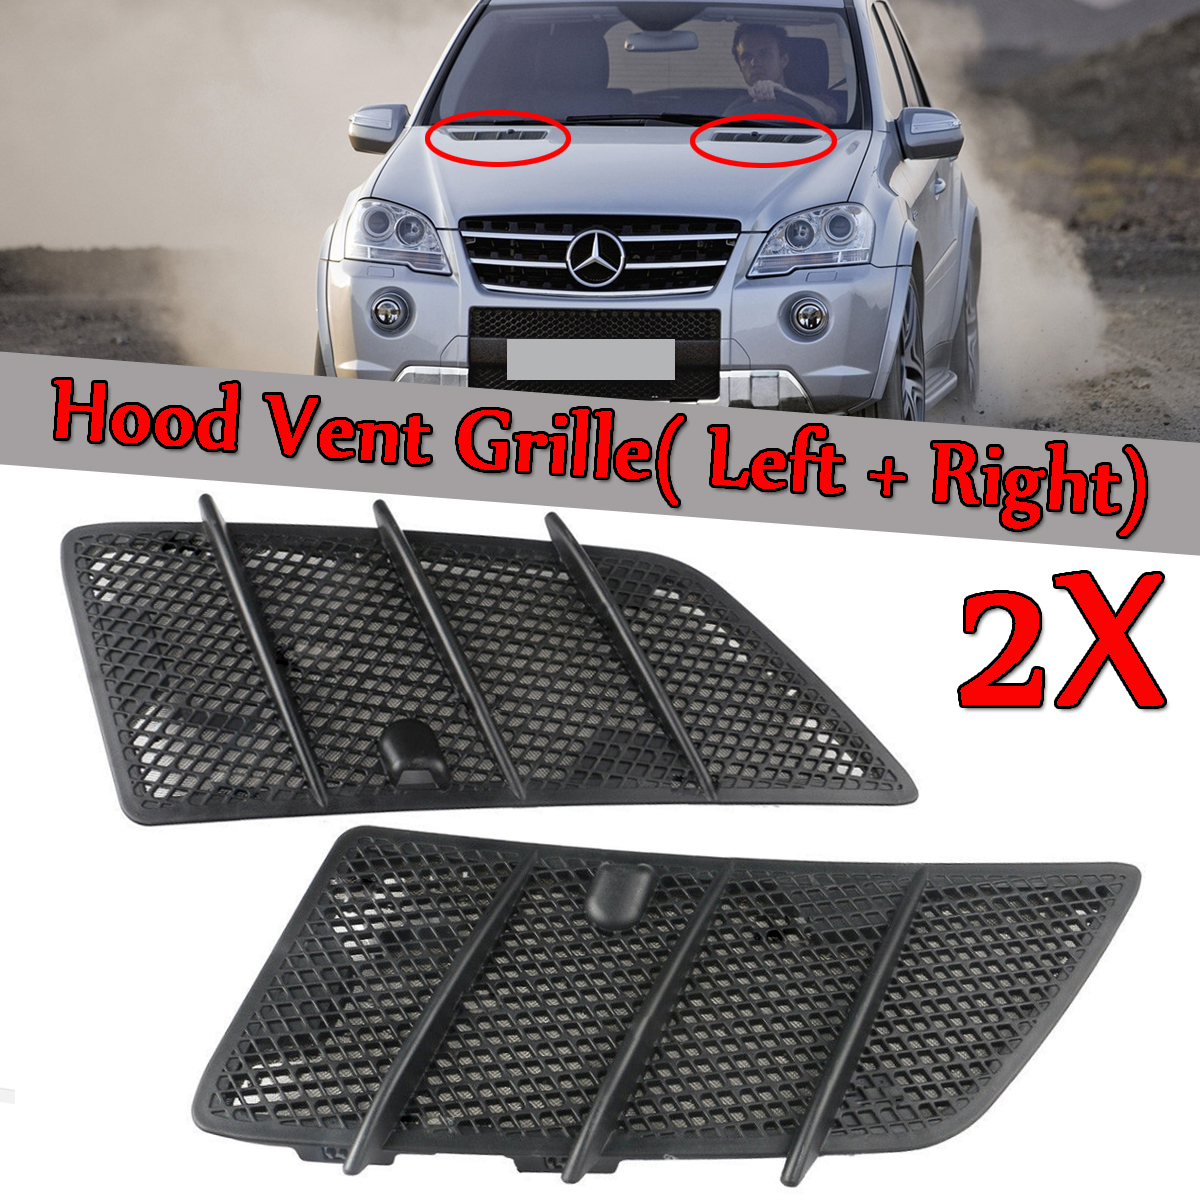 Left / Right Car Front Hood Vents Grille Black For Mercedes For Benz W164 ML / GL Class 2008-2011 Air Flow Intake Hoods grille